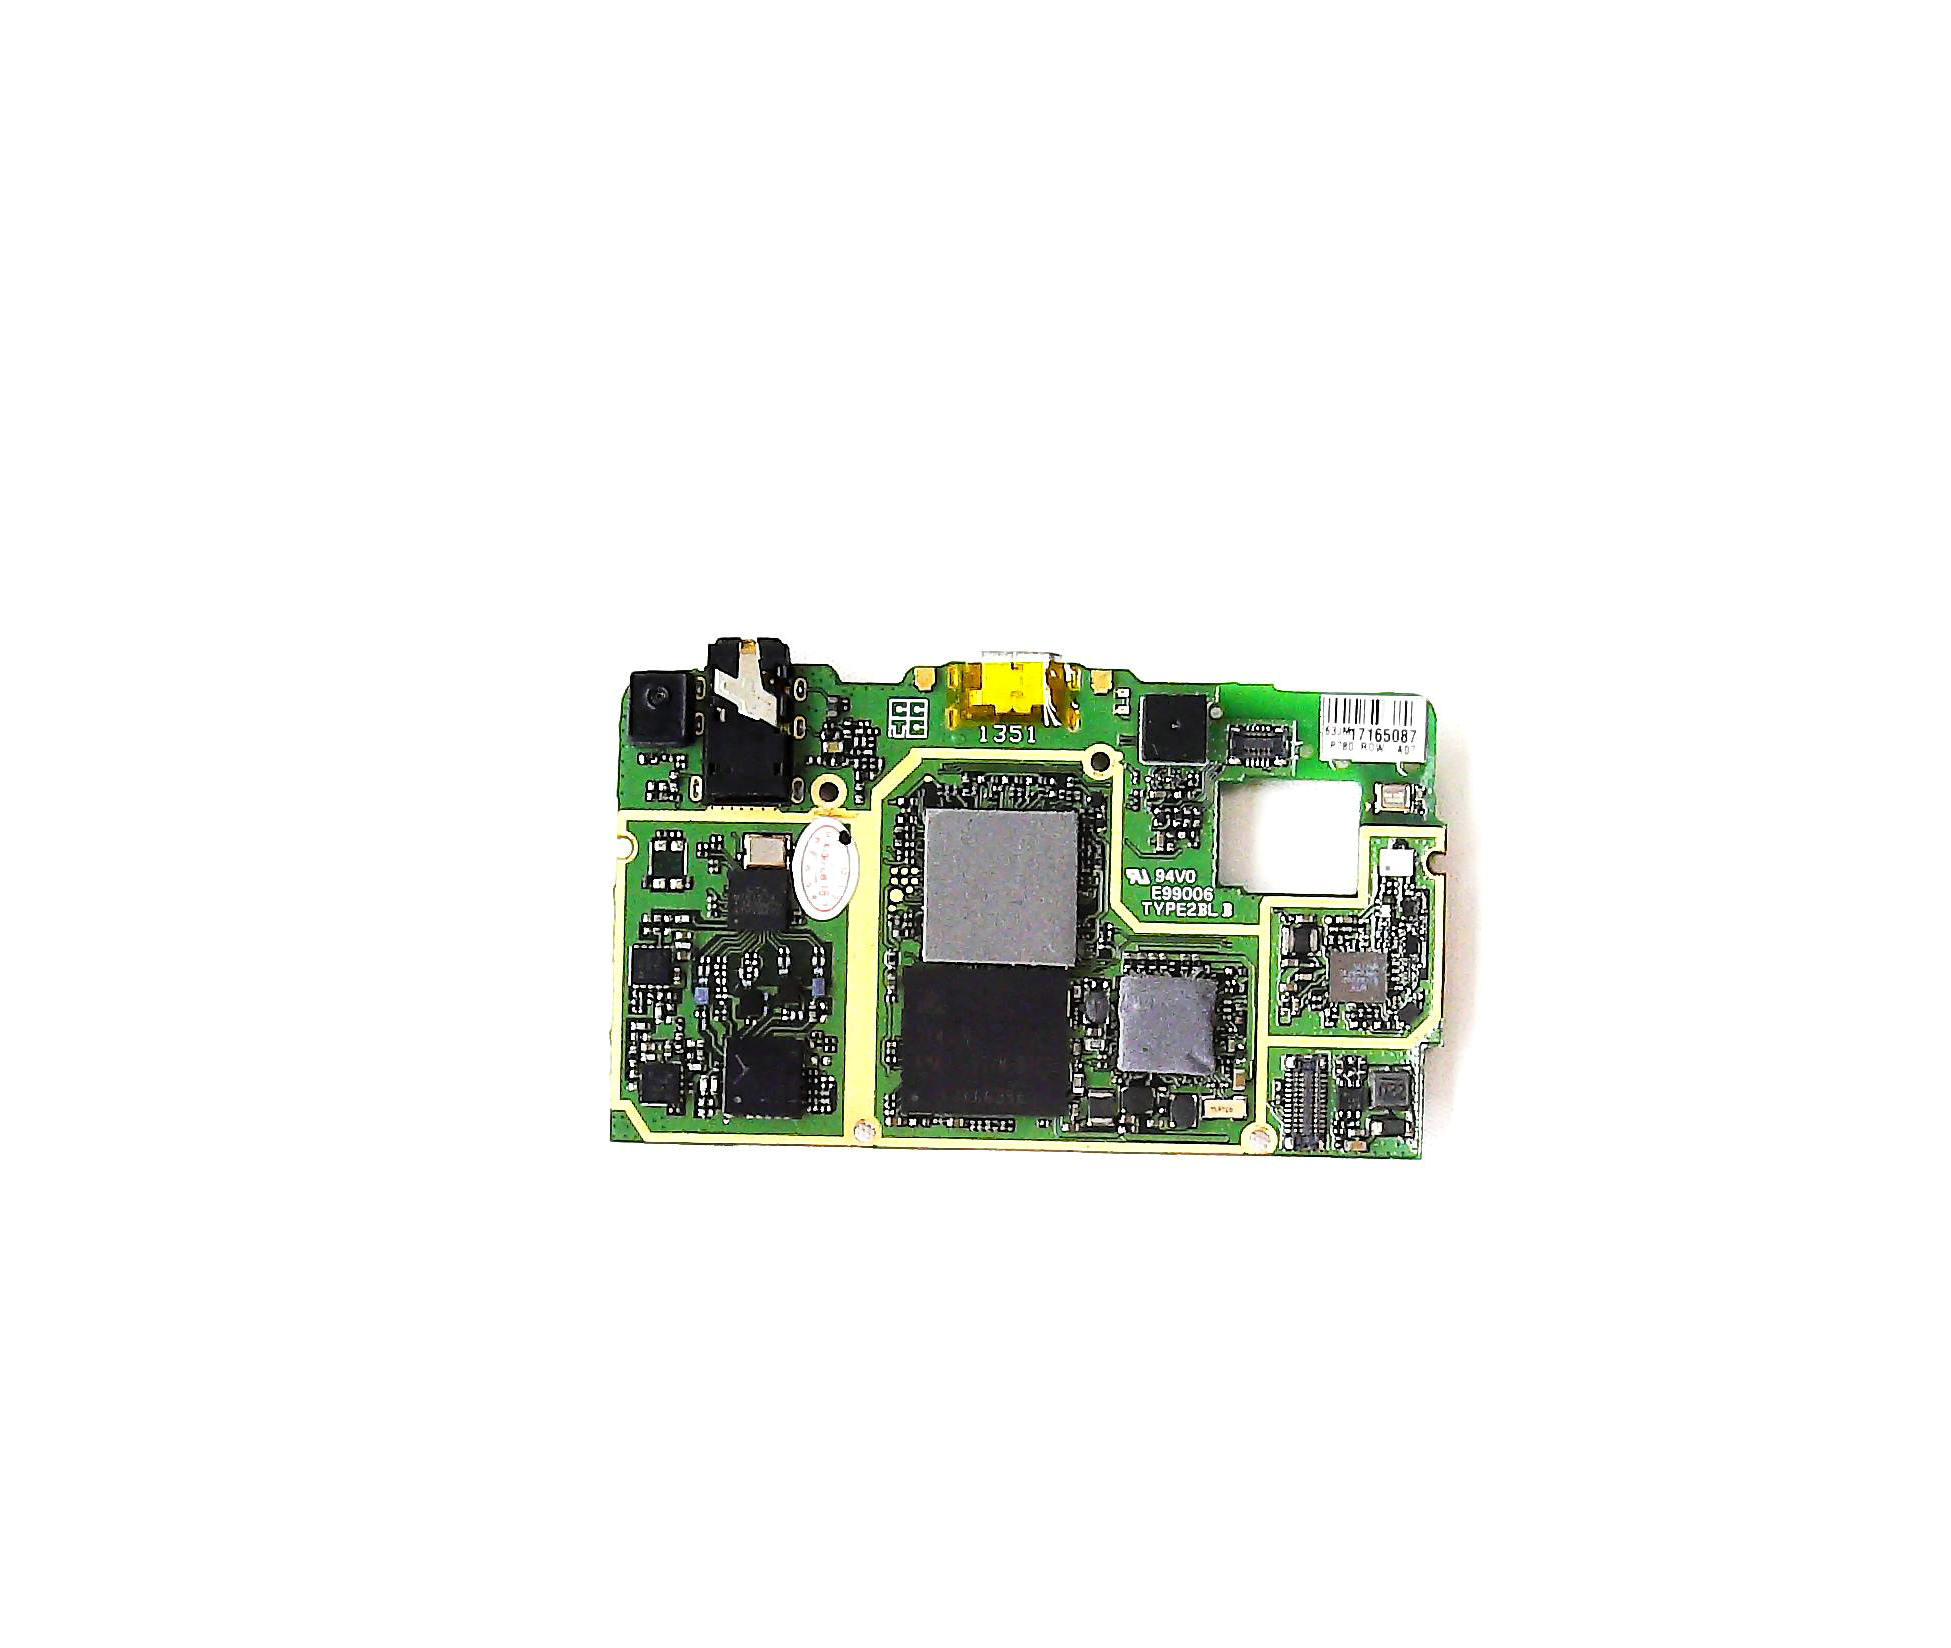 Stonering TESTED used motherboard mainboard board for Lenovo p780 cell phone 8GB ROM Support Russia language